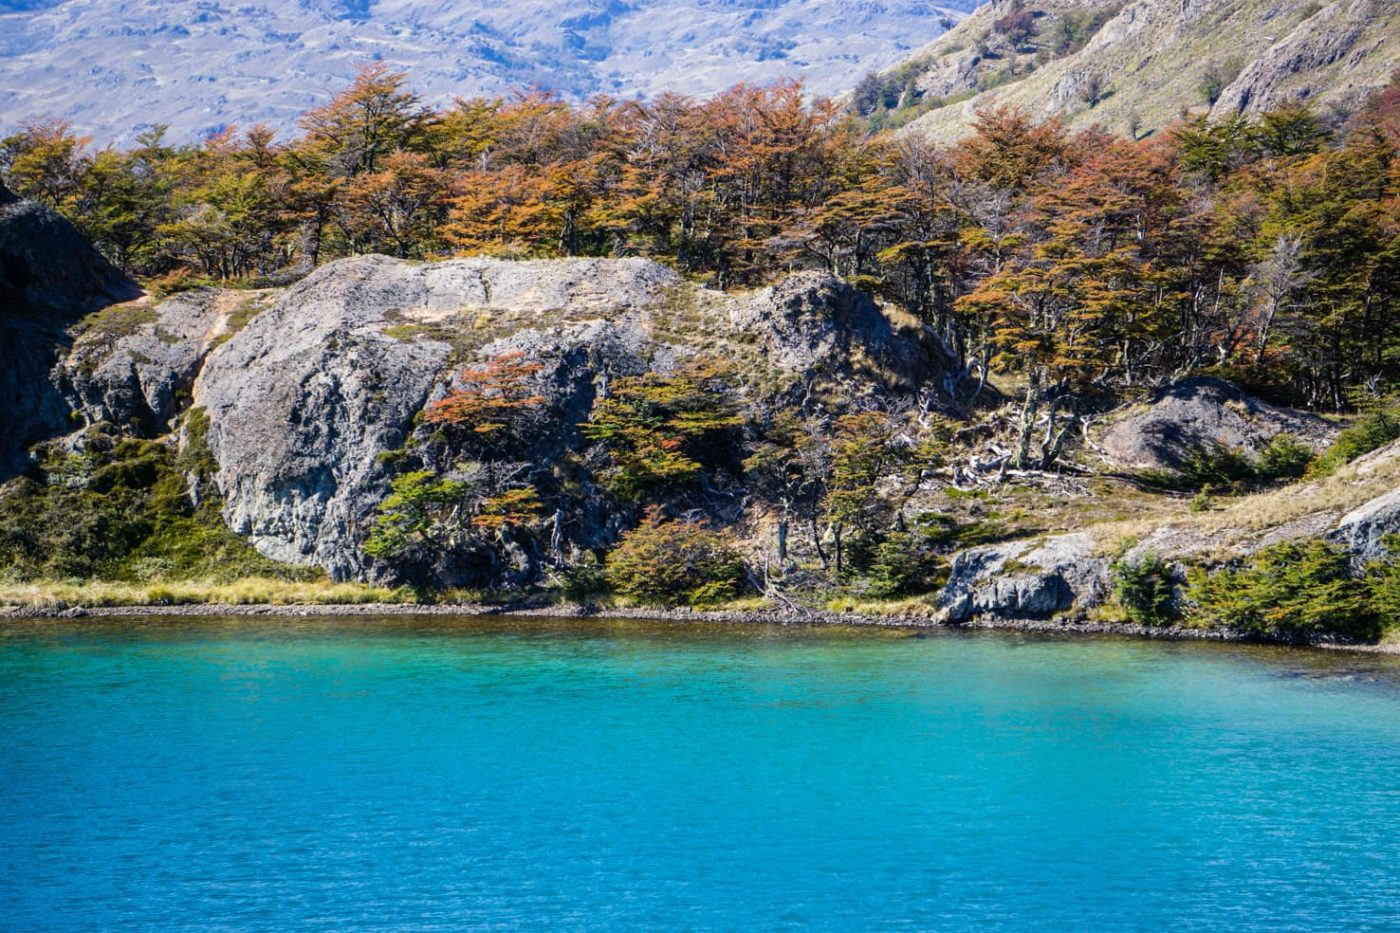 Patagonia National Park. Patagonia, Chile Contributed by Maya from Travel with a Smile